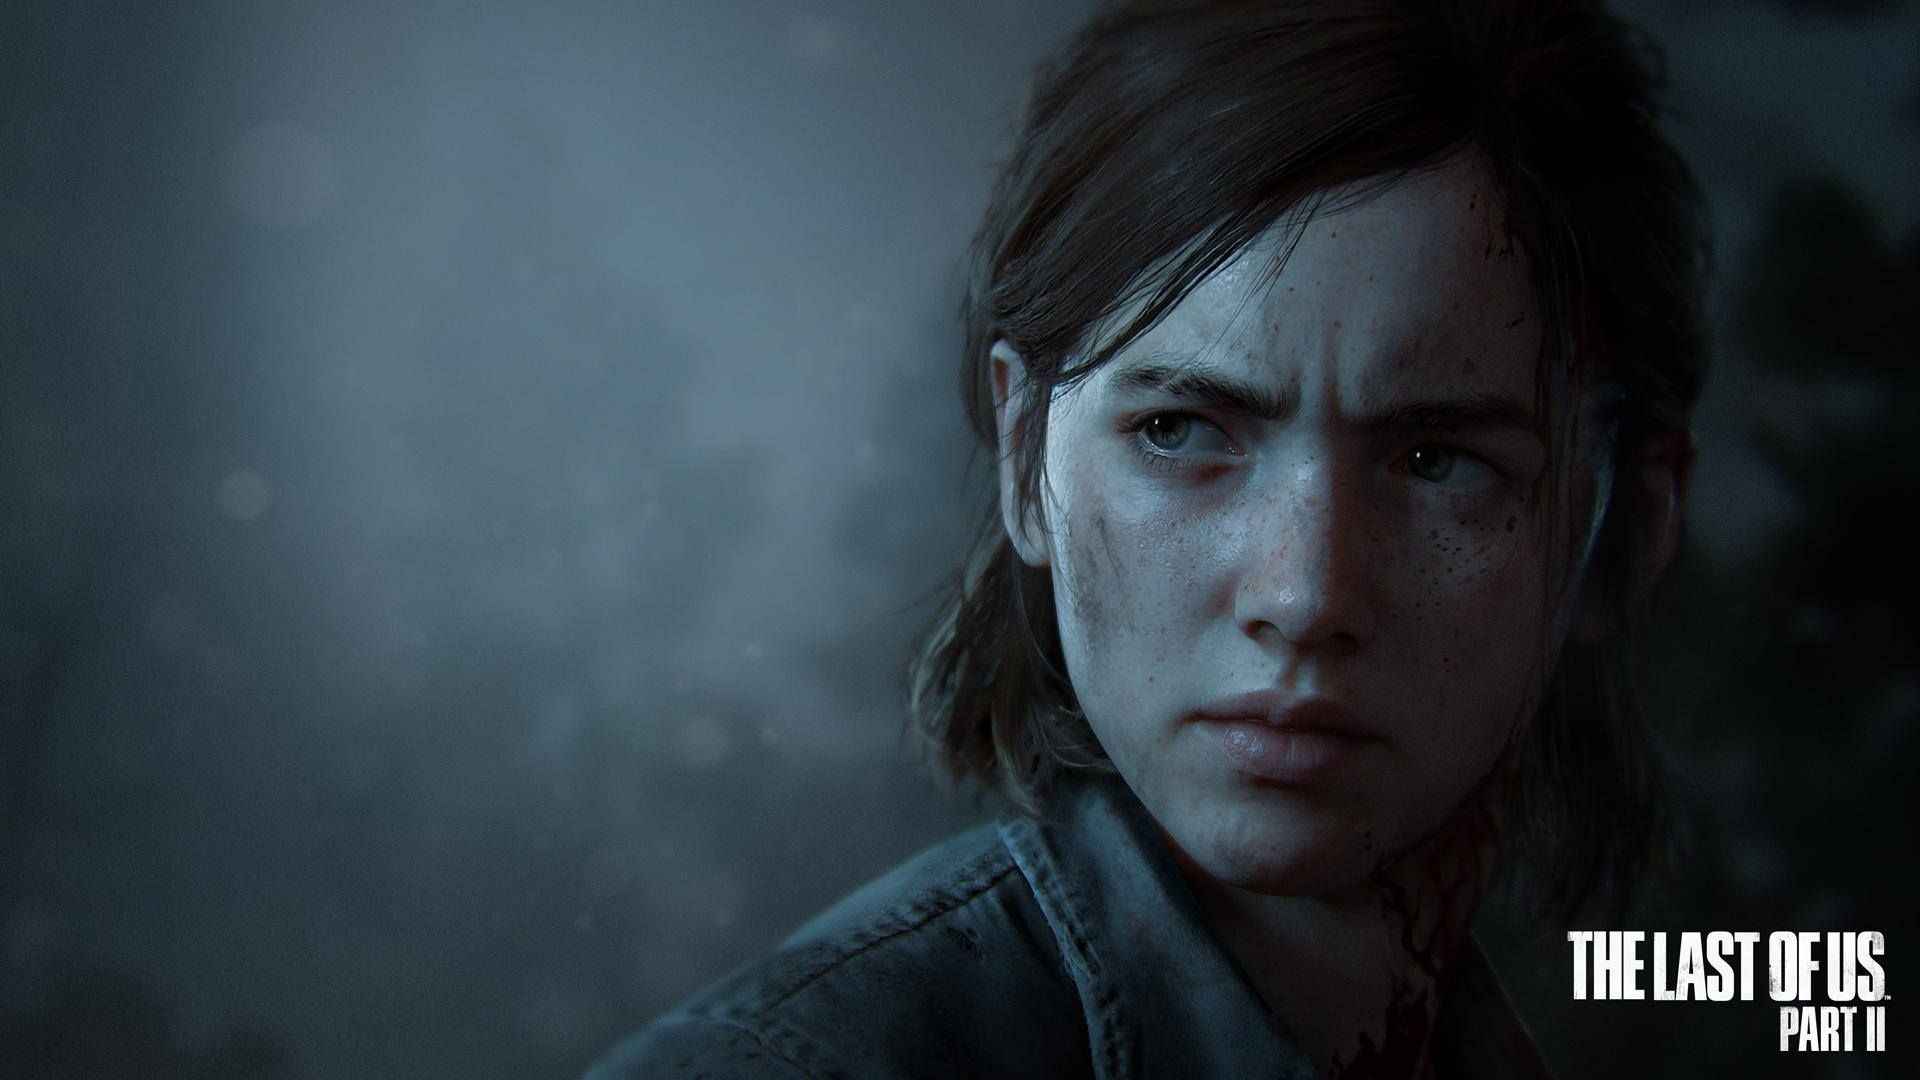 Free Download The Last Of Us Part Ii 4k Wallpaper Images